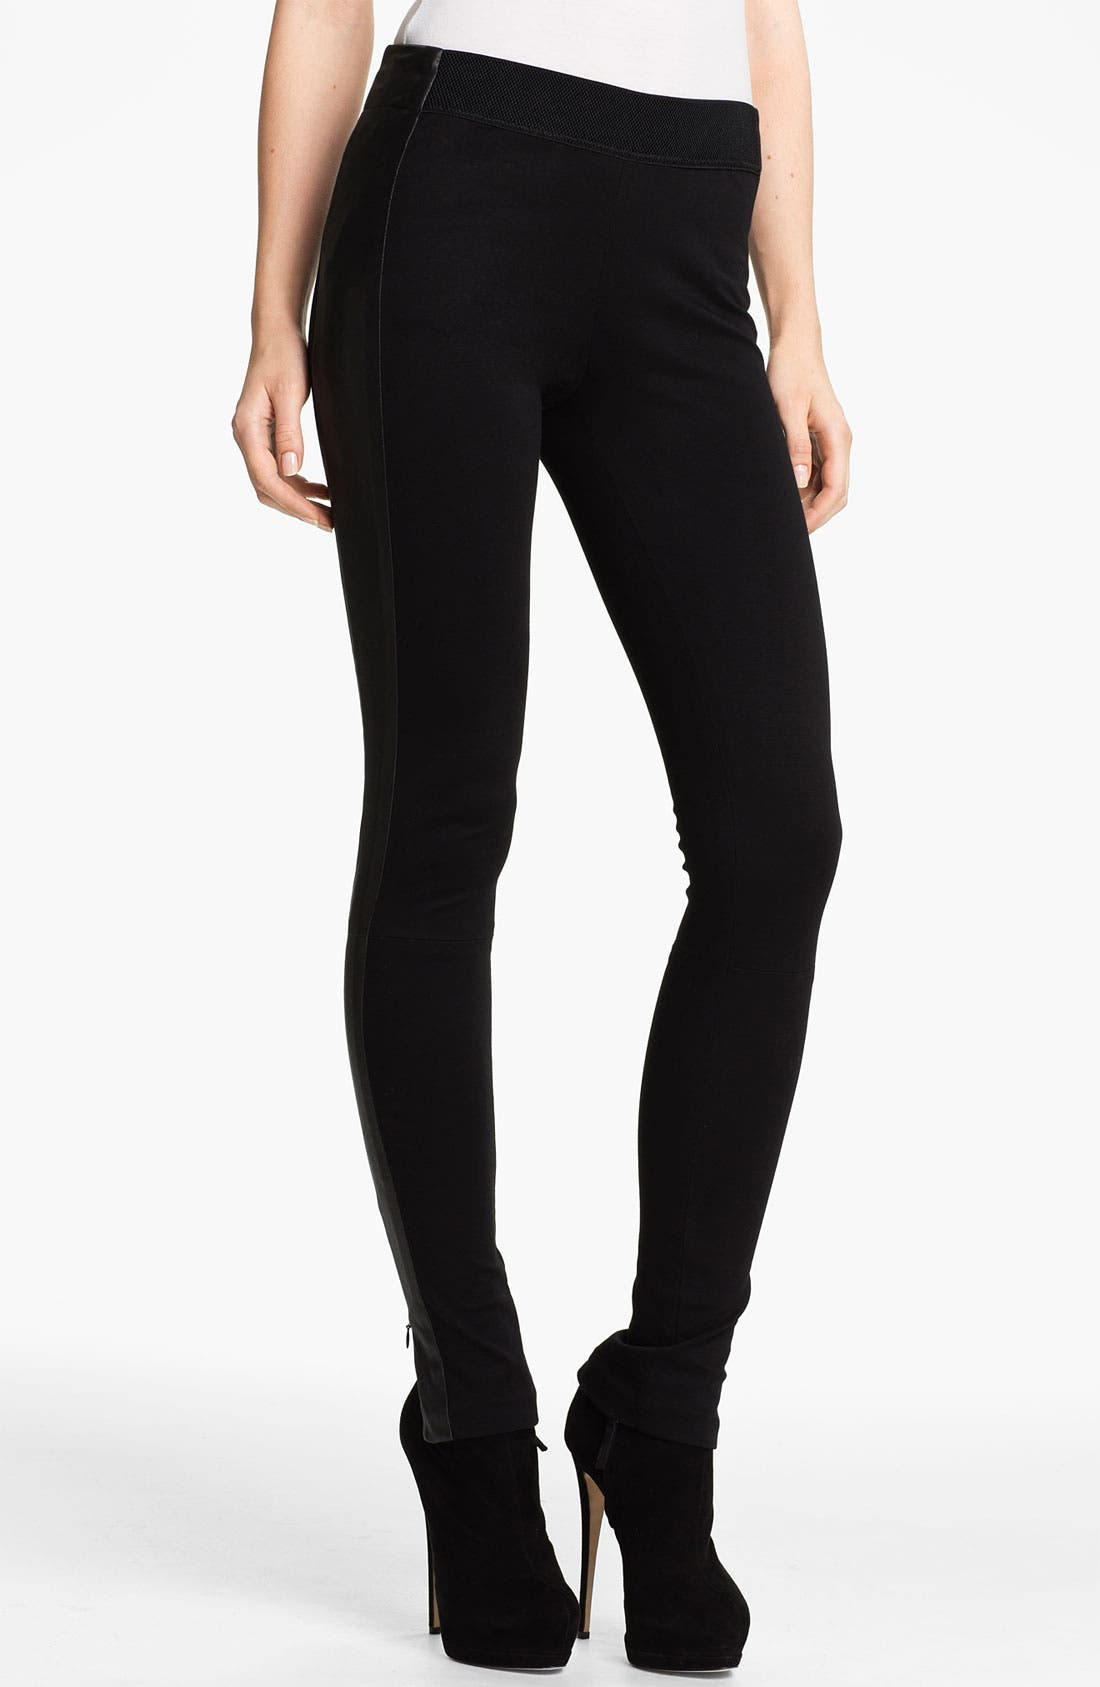 Main Image - rag & bone 'Renard' Leather Tuxedo Stripe Leggings